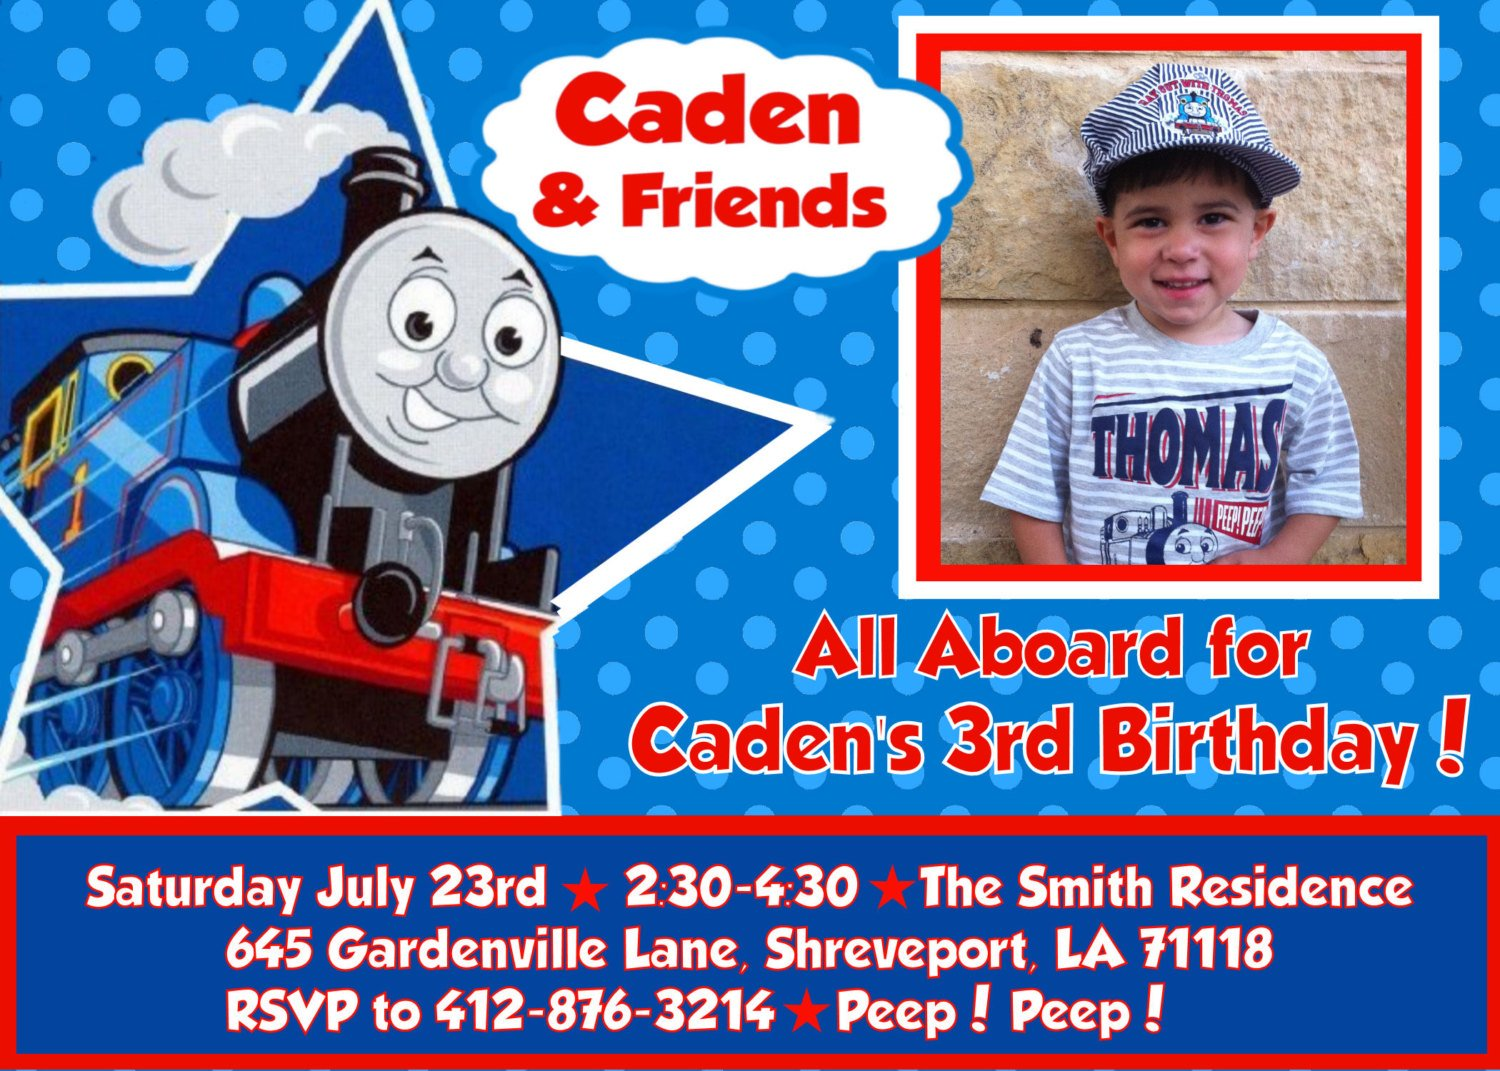 Thomas The Train Birthday Party Invitations Template | Drevio Invitations Design